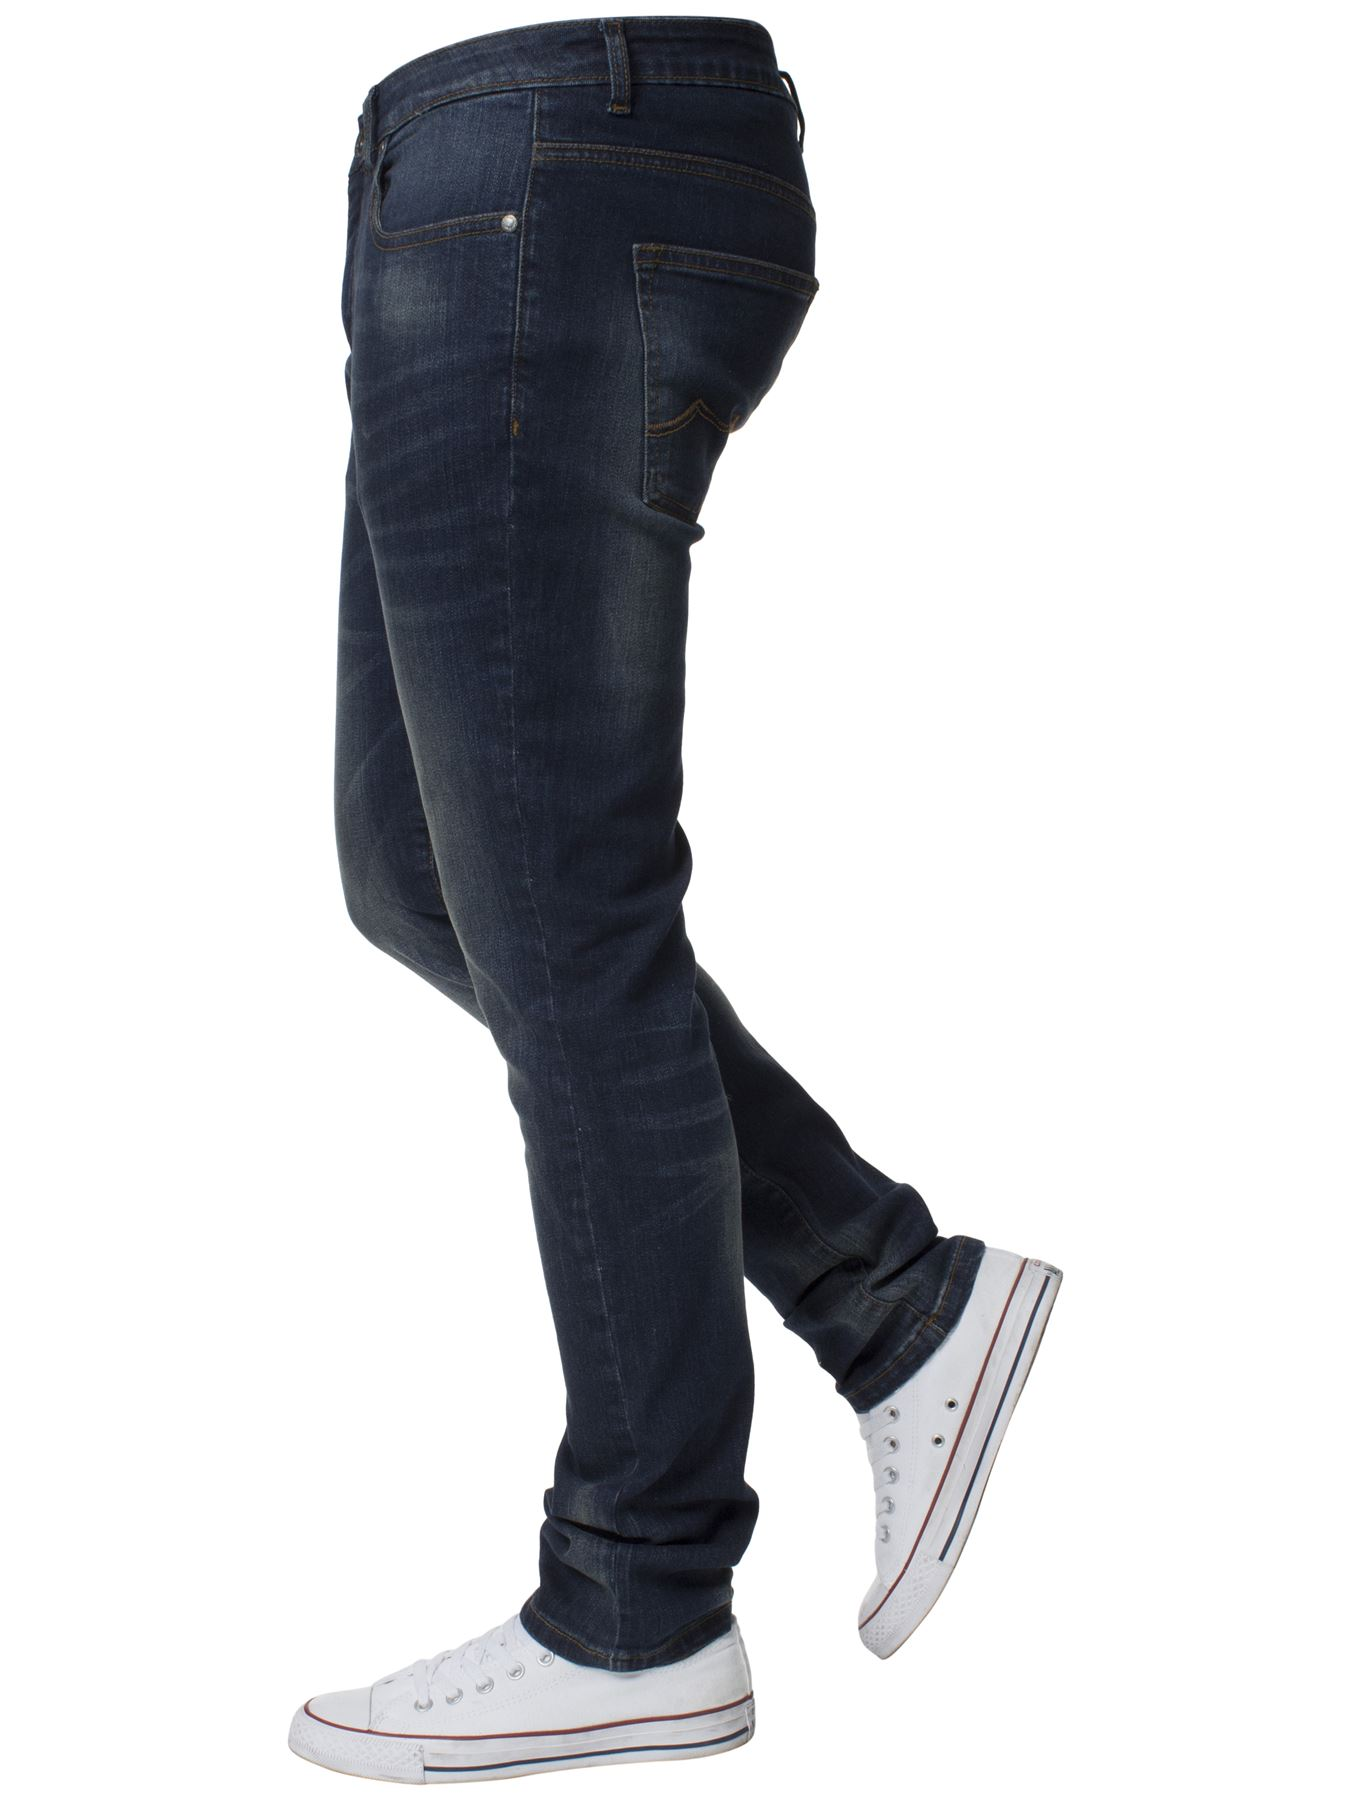 Mens-Skinny-Stretch-Jeans-Slim-Fit-Flex-Denim-Trousers-Pants-King-Sizes-by-Kruze thumbnail 19